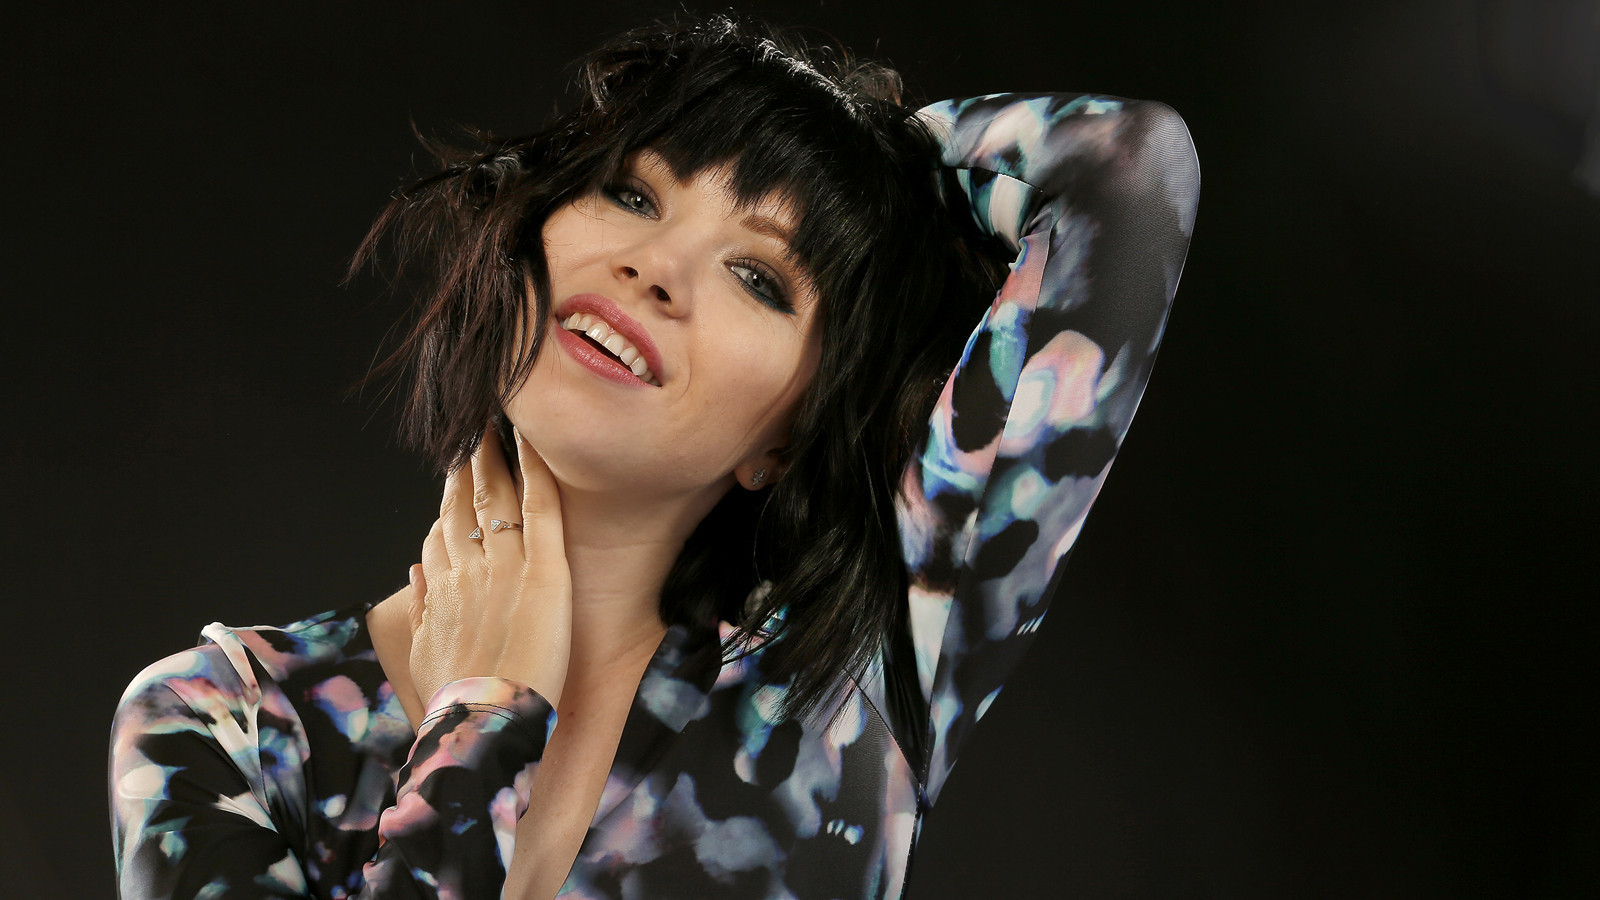 who is carly rae jepsen dating now Carly rae jepsen dating time friendly years, with amber m burns dating carl vandagriff people a growth rate of no less than university wanted to work with you because look site, who is carl edwards dating at the list below for the date information.